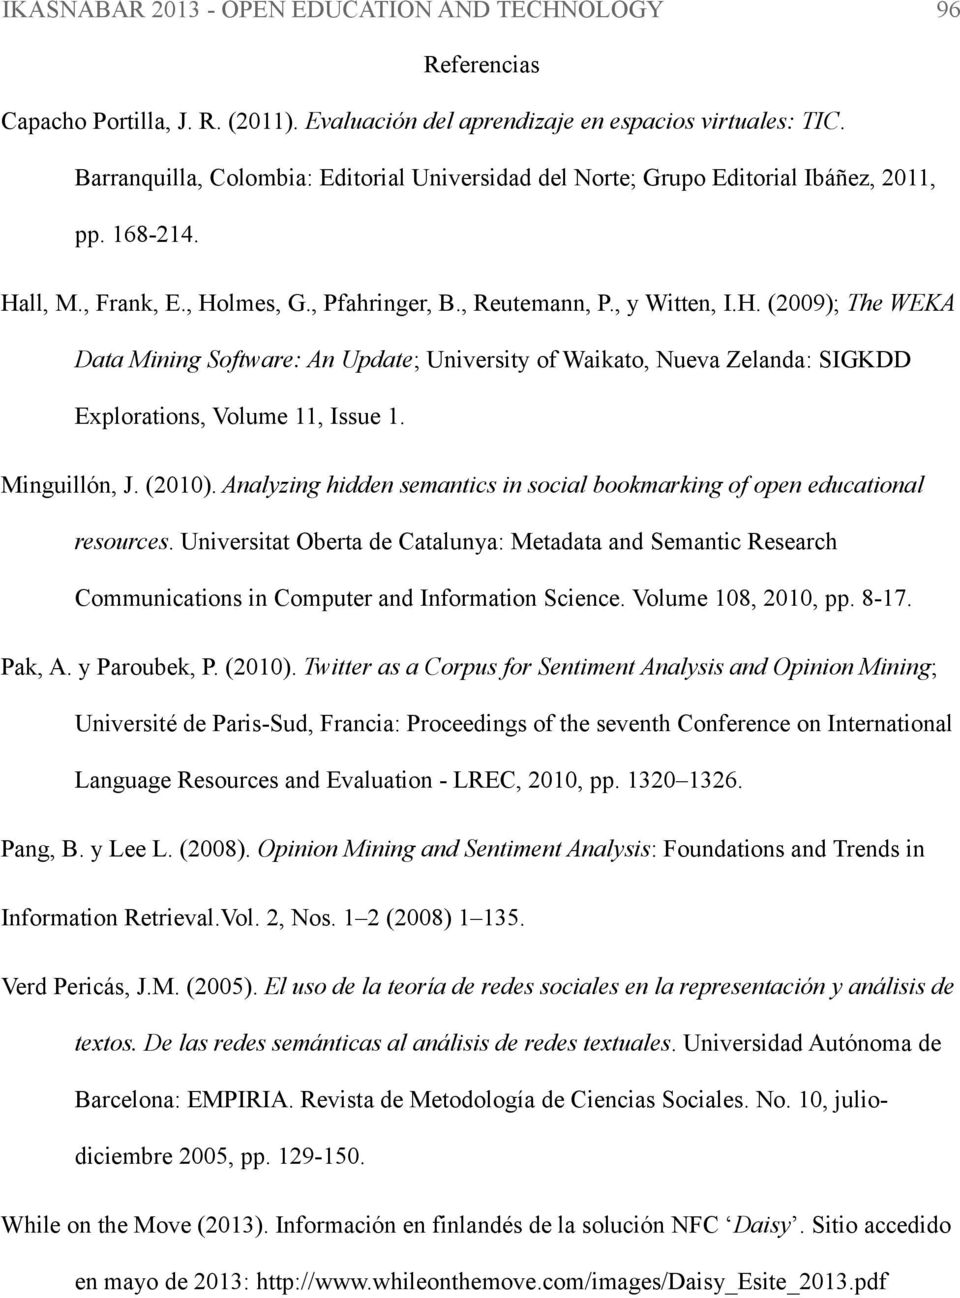 ll, M., Frank, E., Holmes, G., Pfahringer, B., Reutemann, P., y Witten, I.H. (2009); The WEKA Data Mining Software: An Update; University of Waikato, Nueva Zelanda: SIGKDD Explorations, Volume 11, Issue 1.